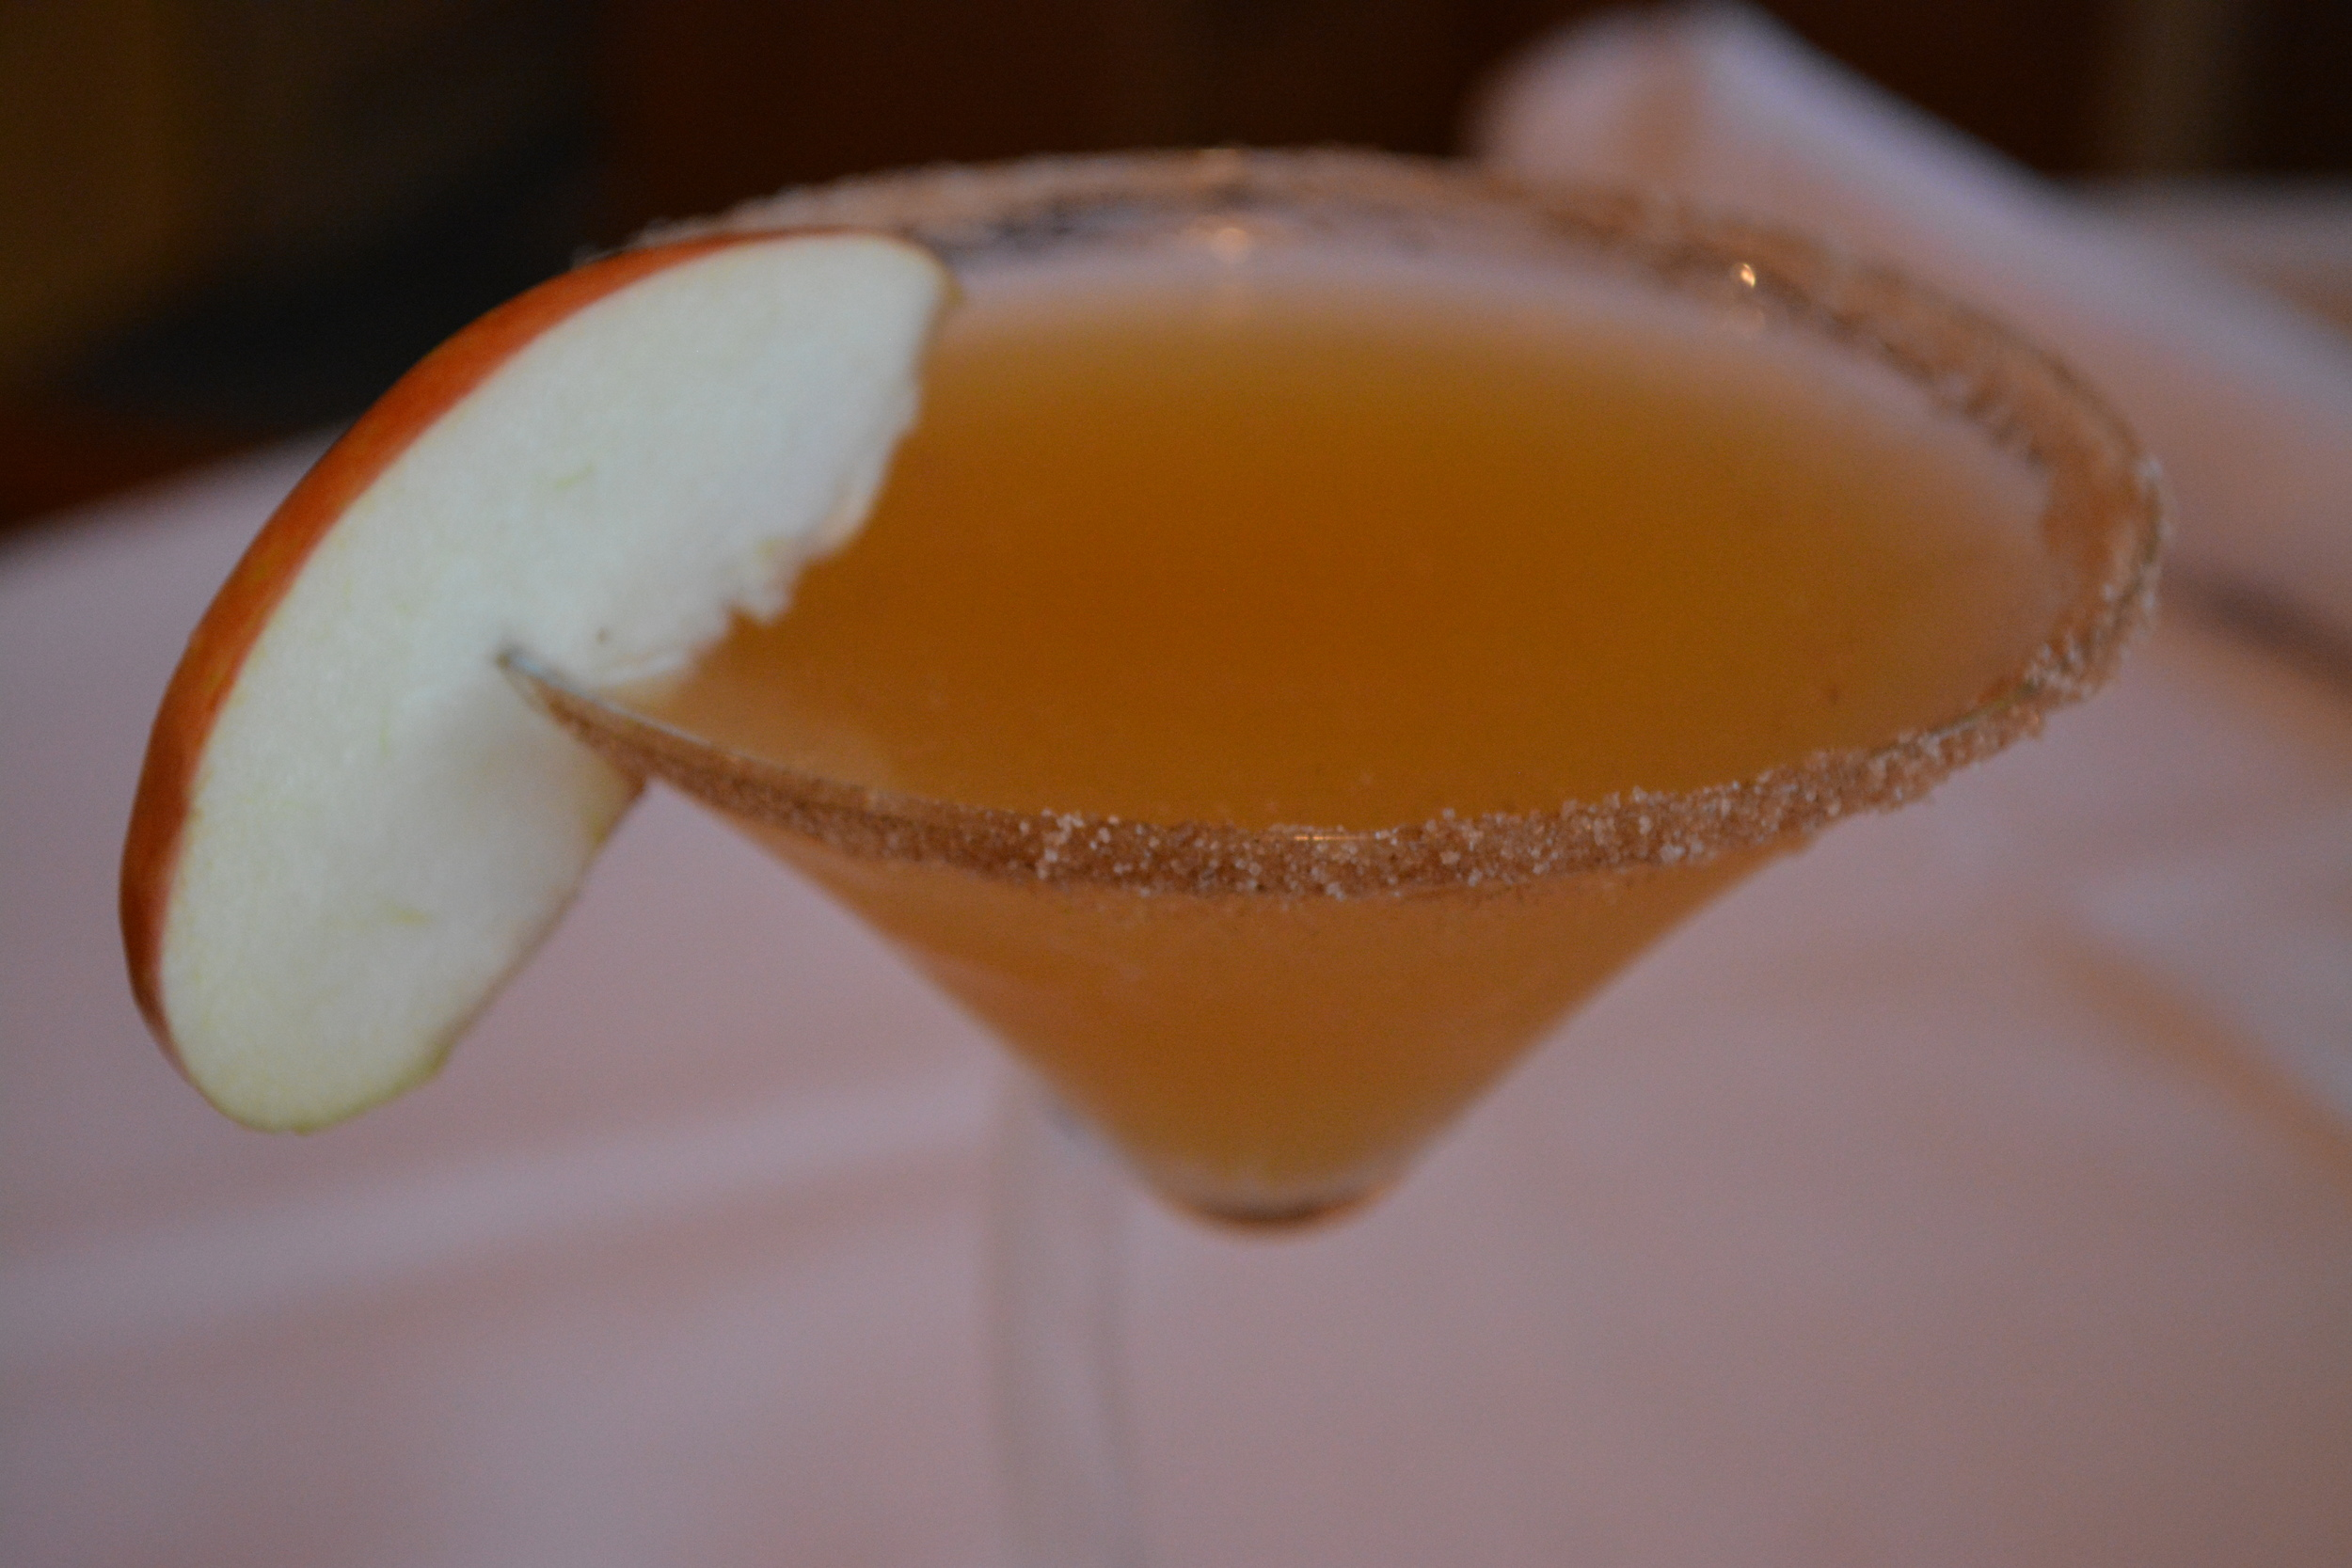 The Apple Cider Martini goes down easy and brims with autumn flair.